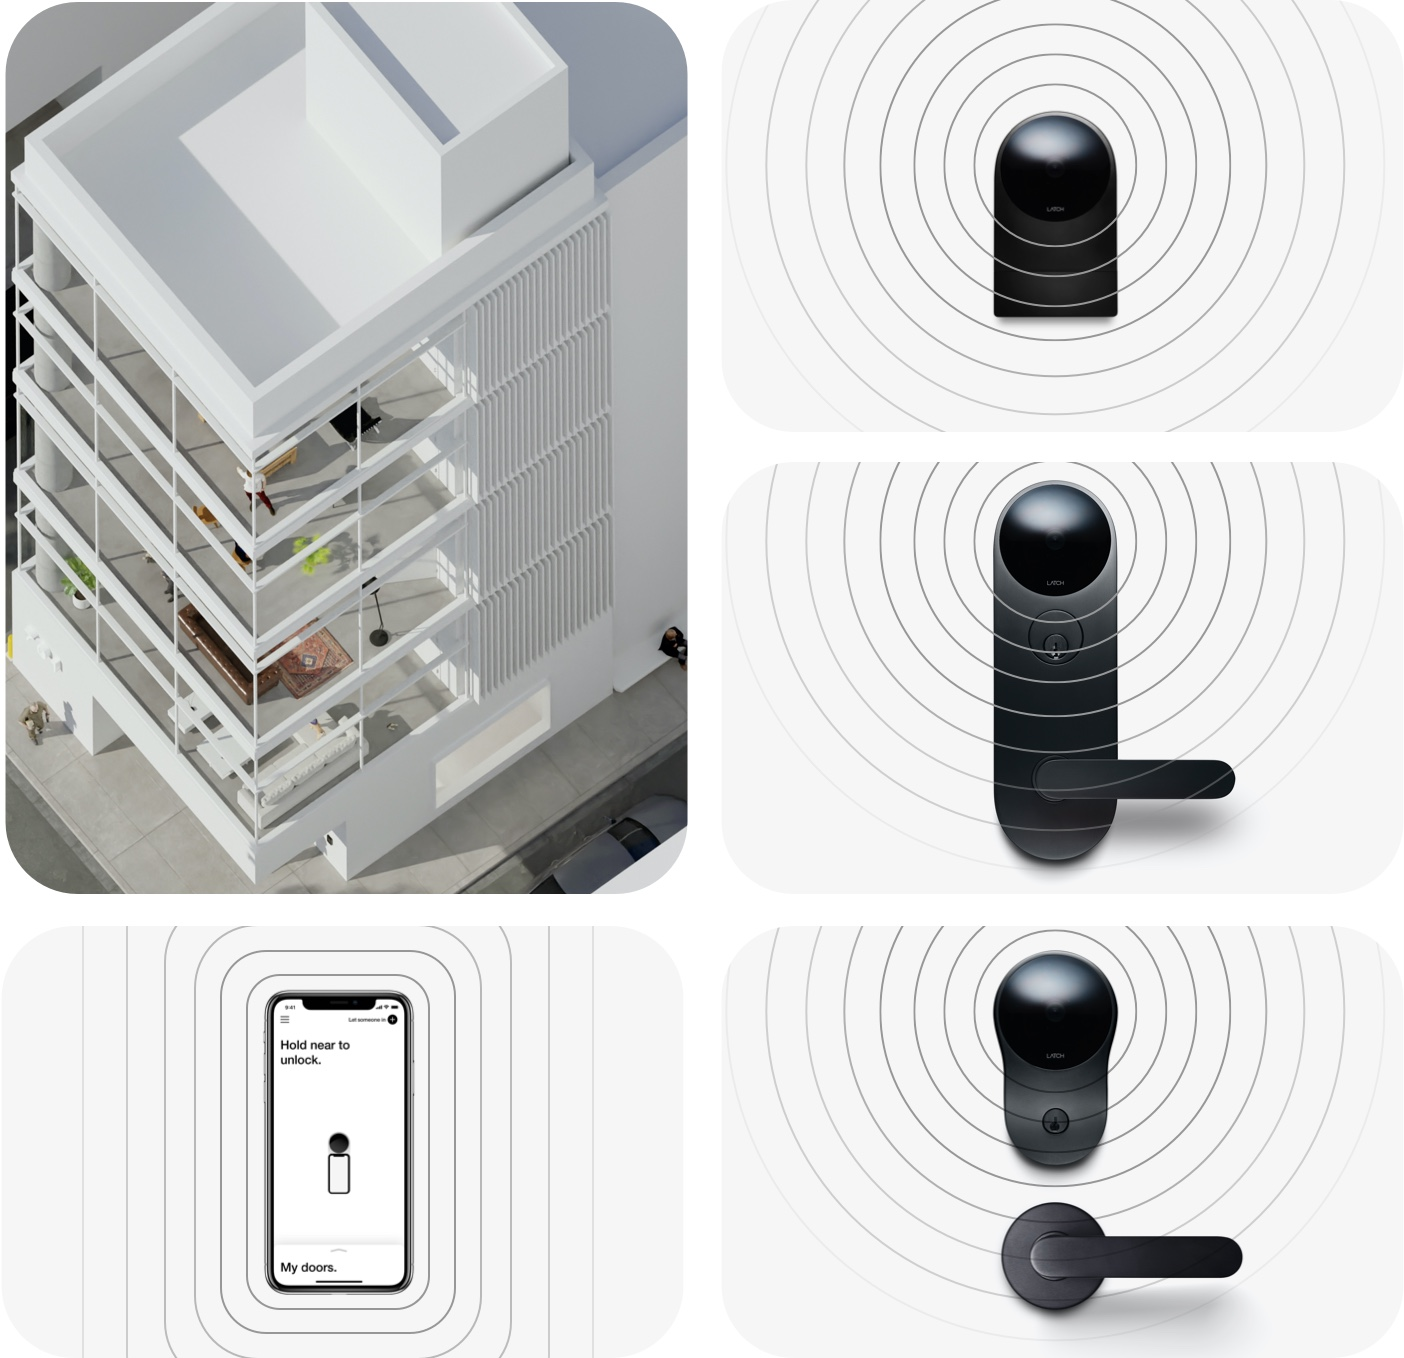 Collage showing aerial view of a Latch apartment and Latch R, Latch M, Latch C, and Latch app.